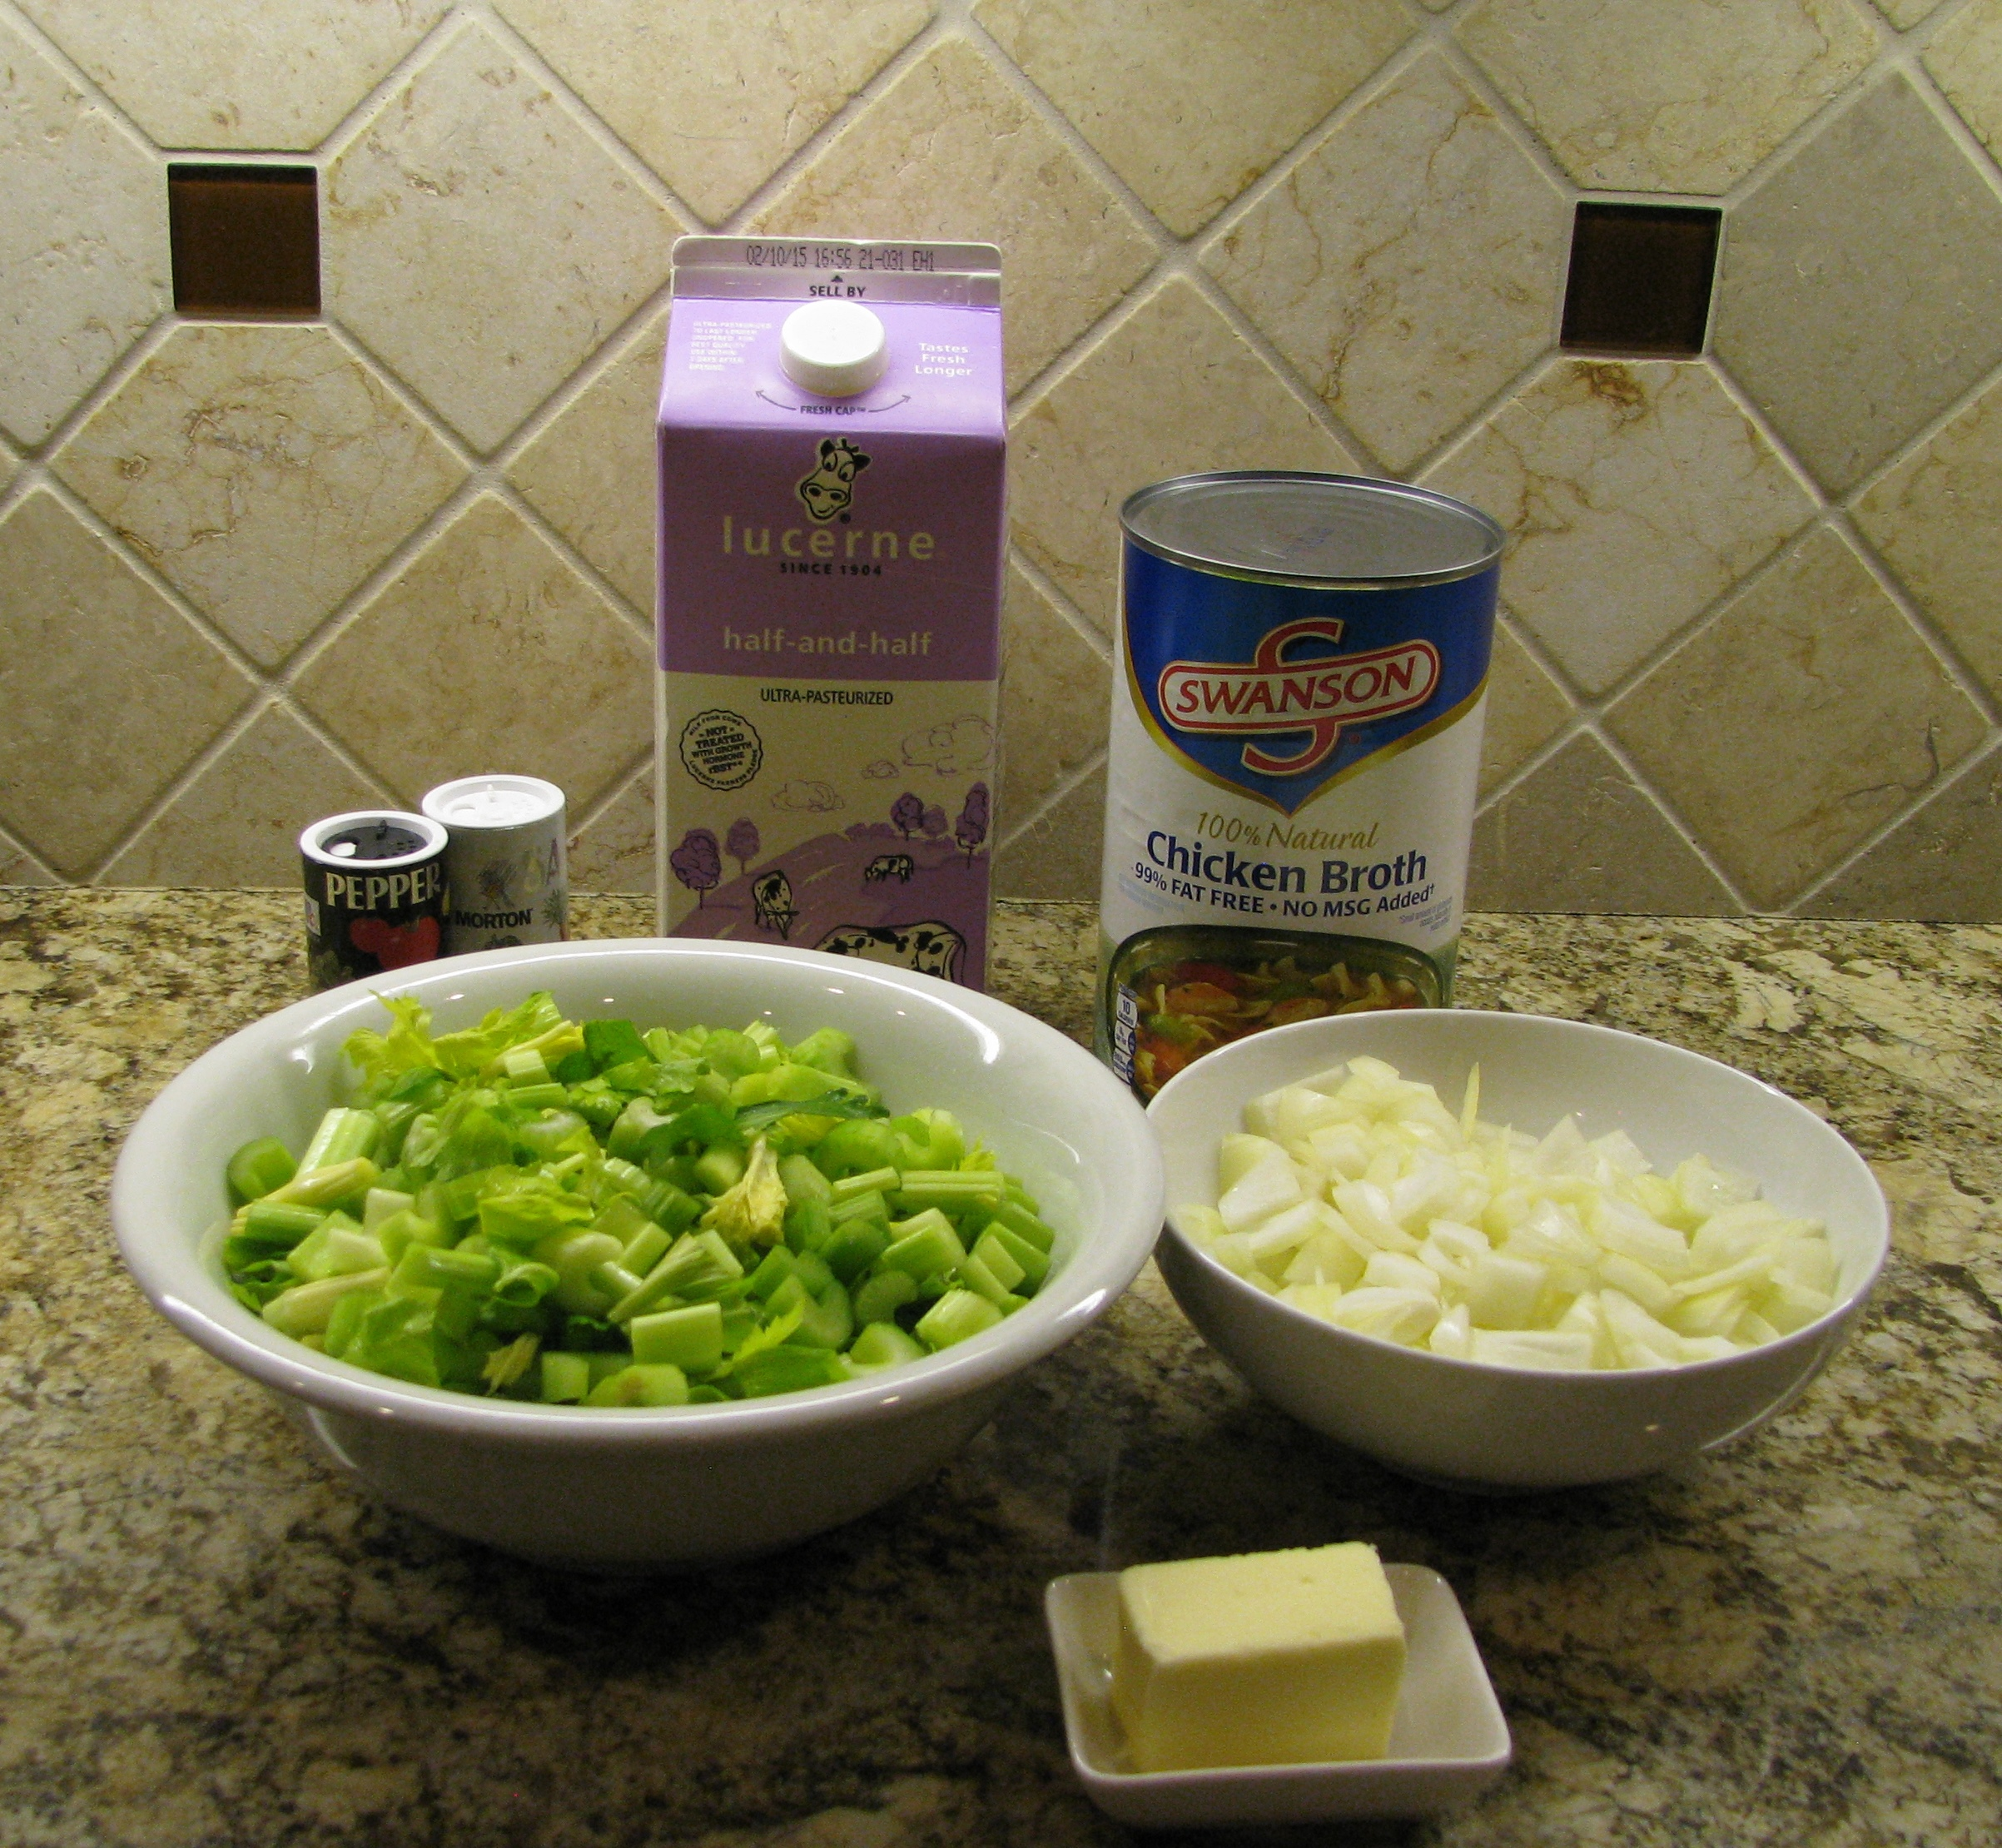 Ingredients ready to go for celery soup